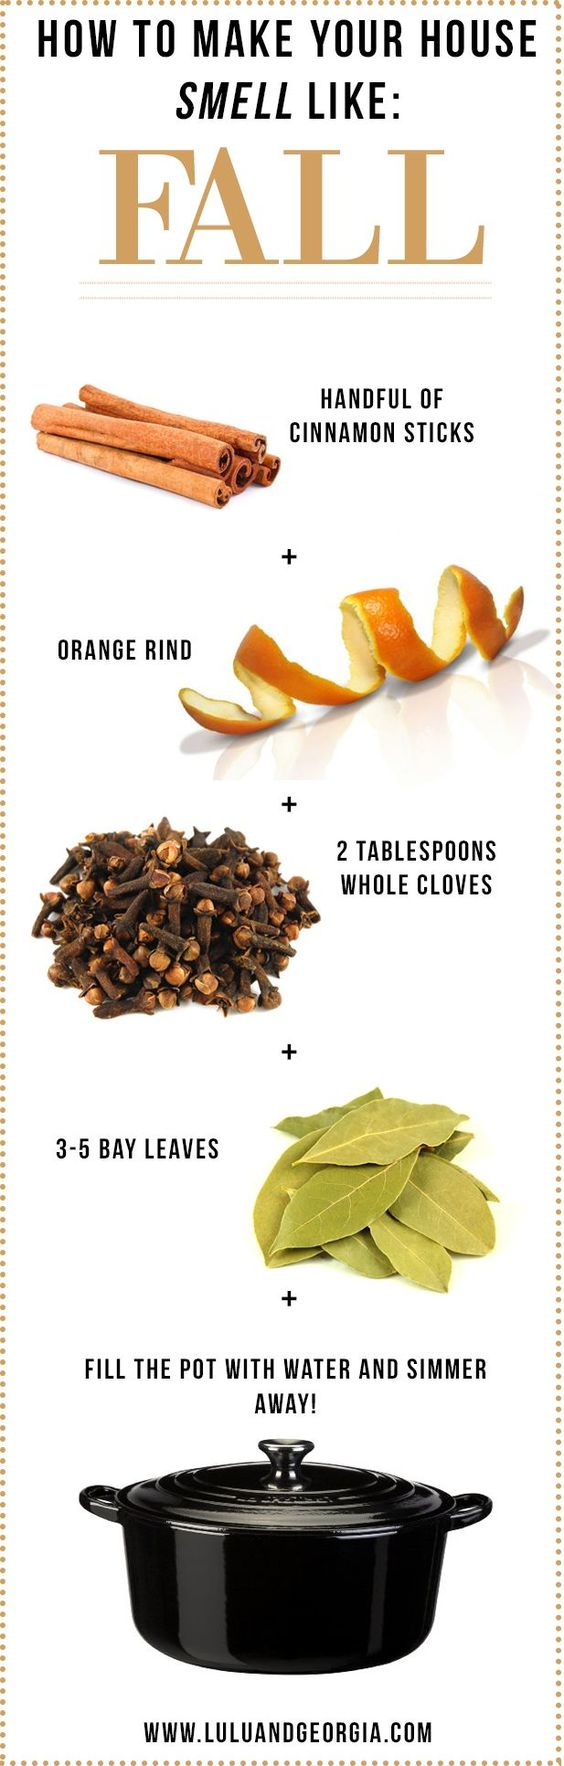 Make Your House Smell Like Fall Infographic